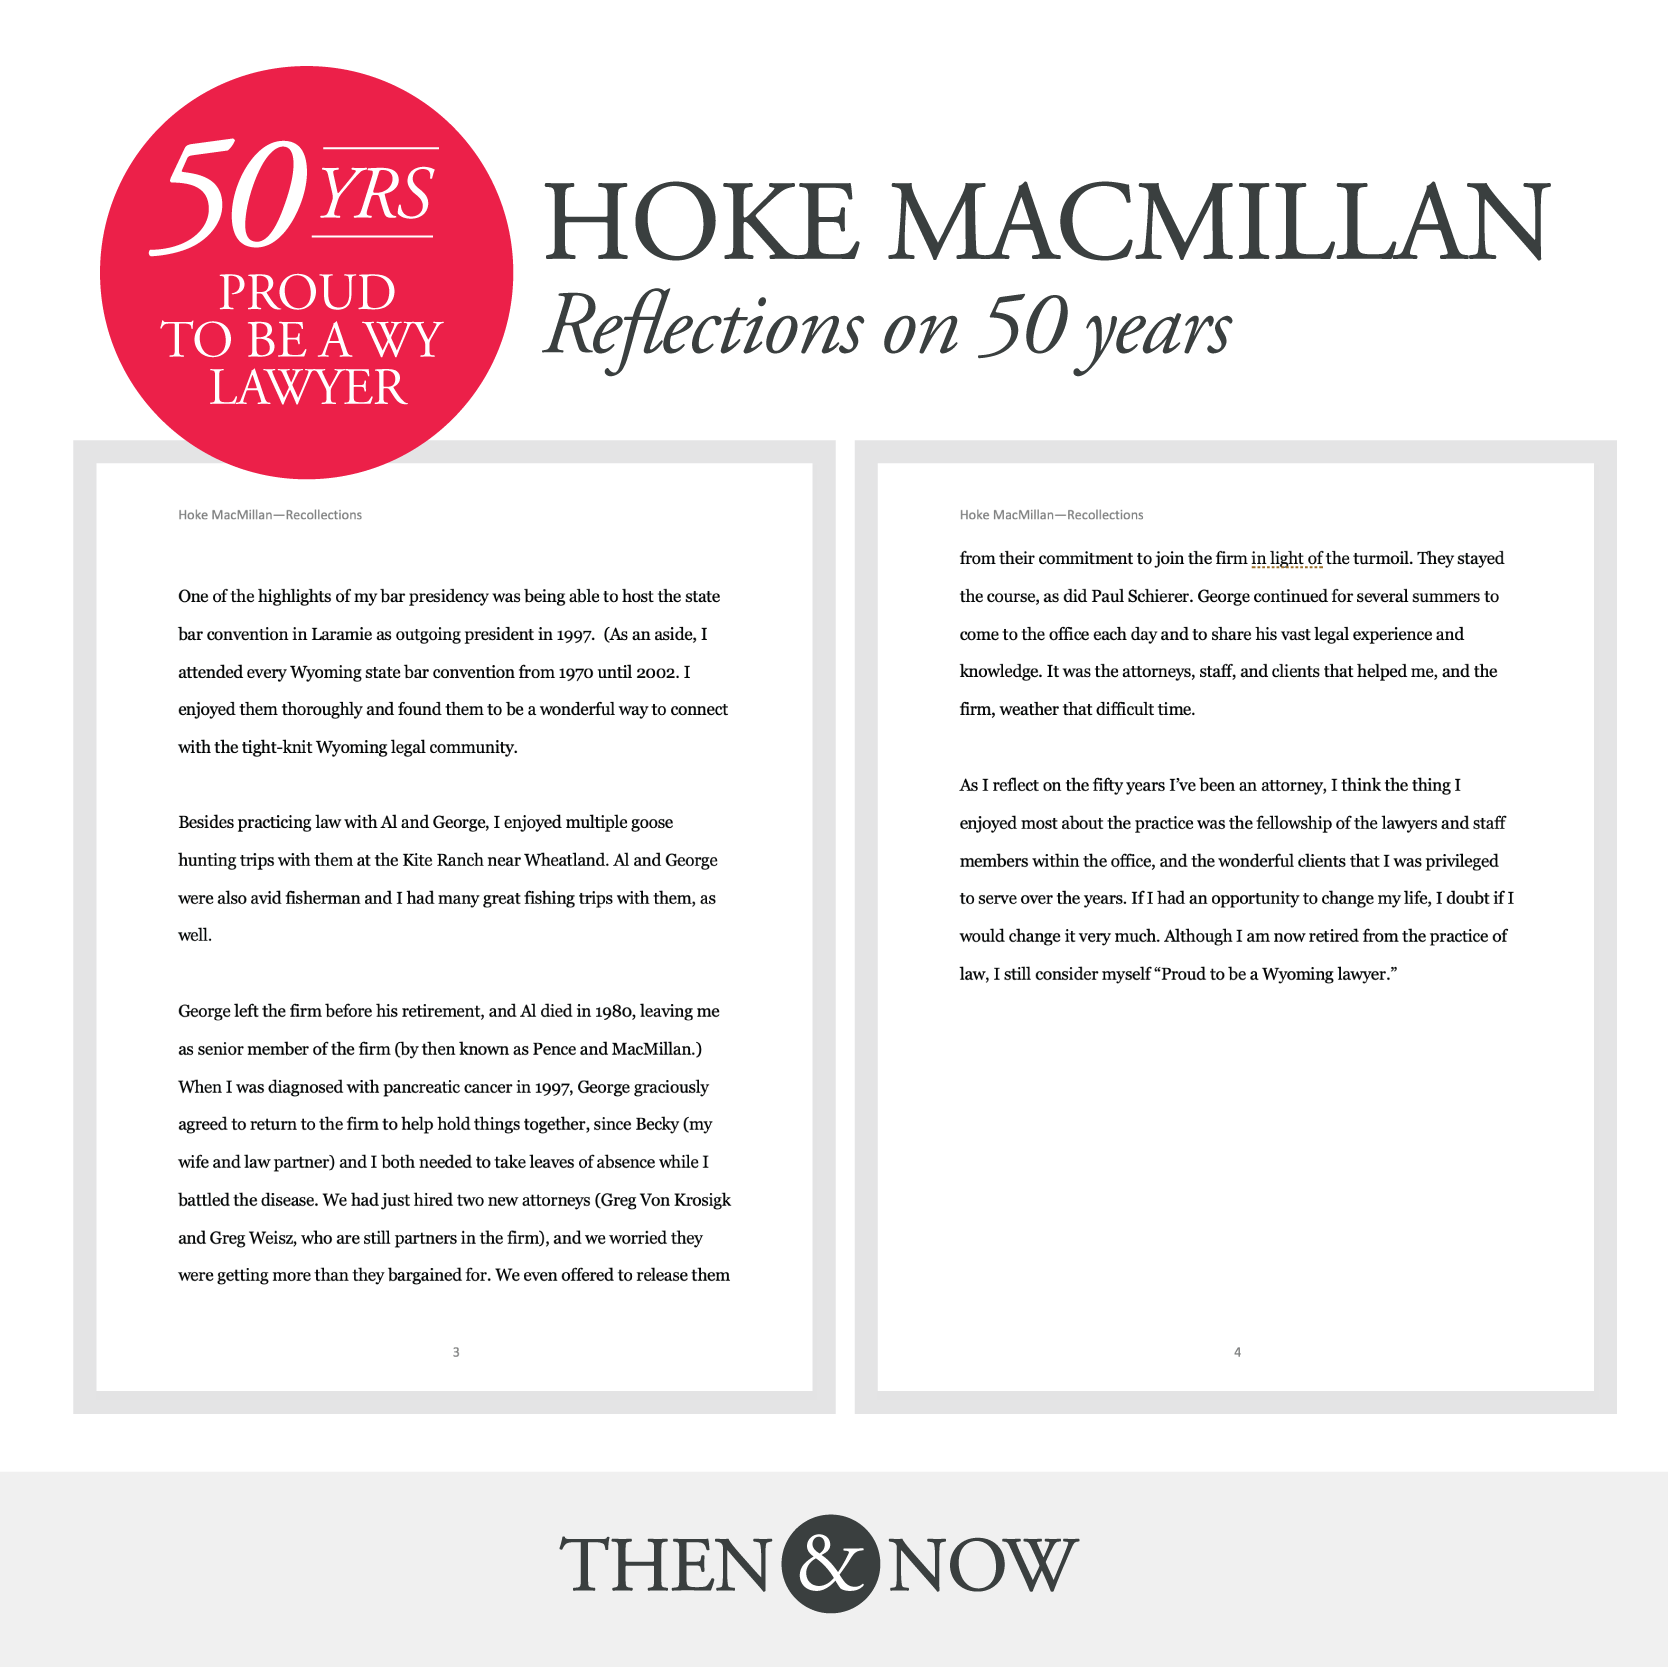 50 Years Proud to Be a Wyoming Lawyer: Hoke MacMillan Reflections on 50 Years